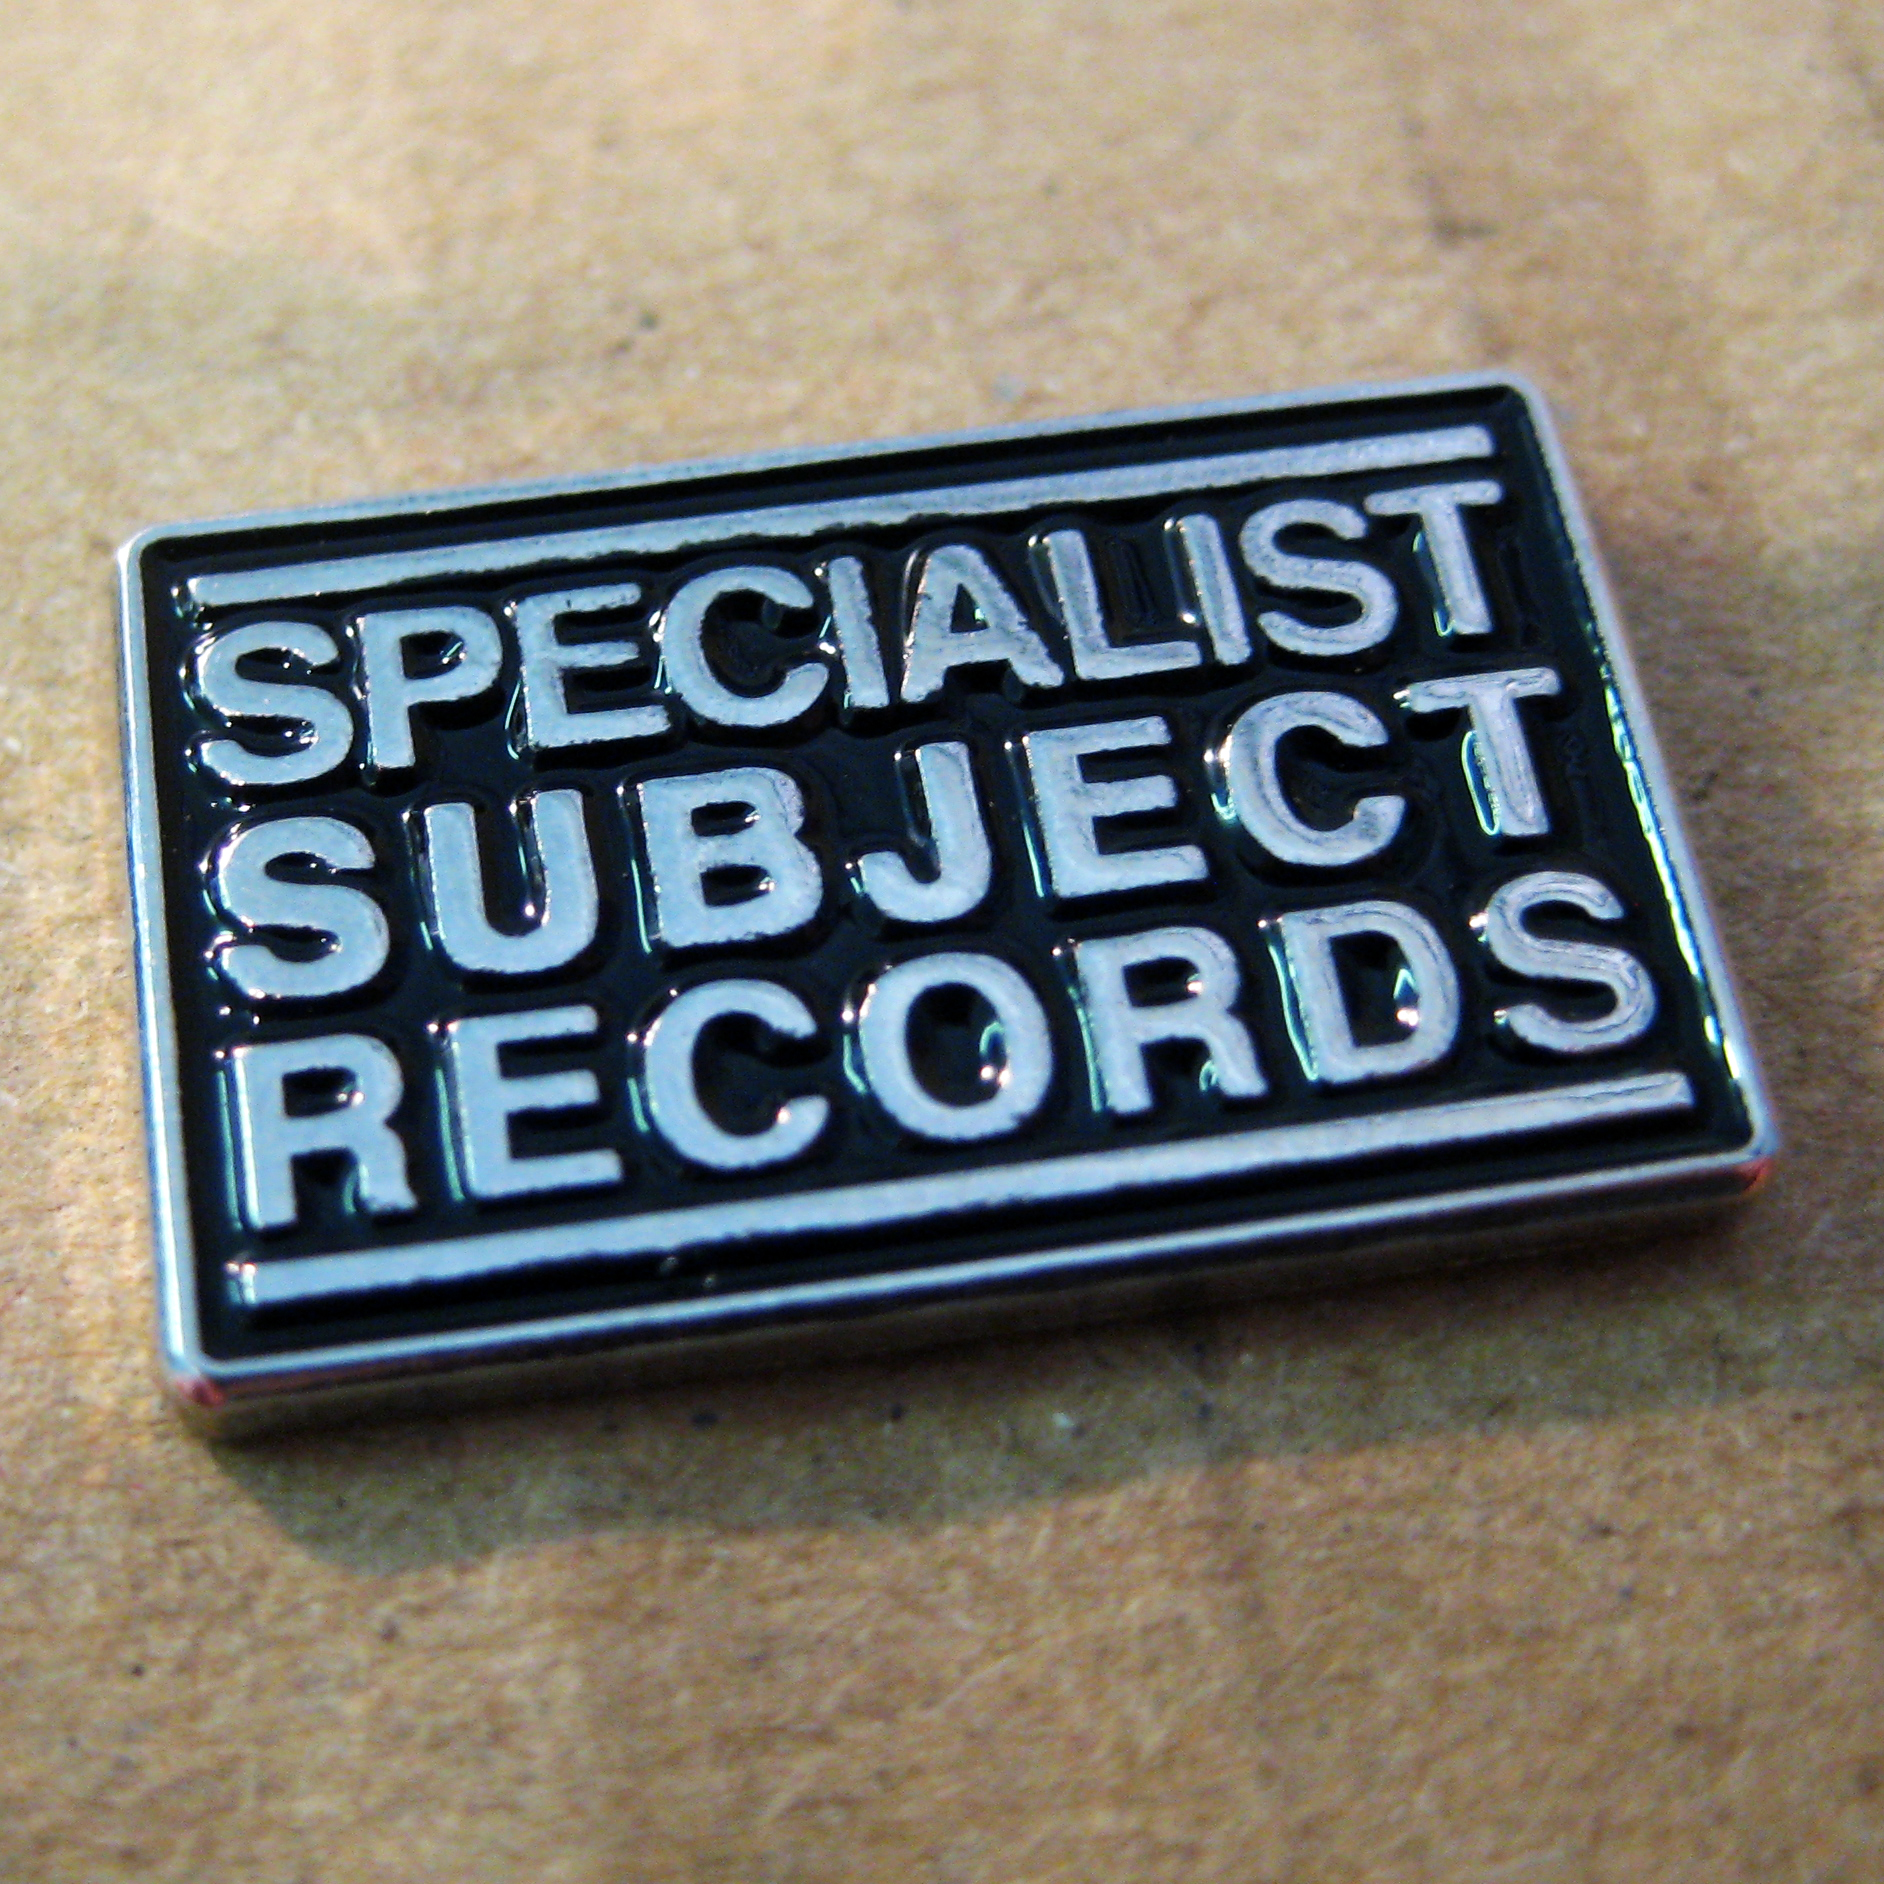 SPECIALIST SUBJECT RECORDS - UK Vinyl Record Label ...